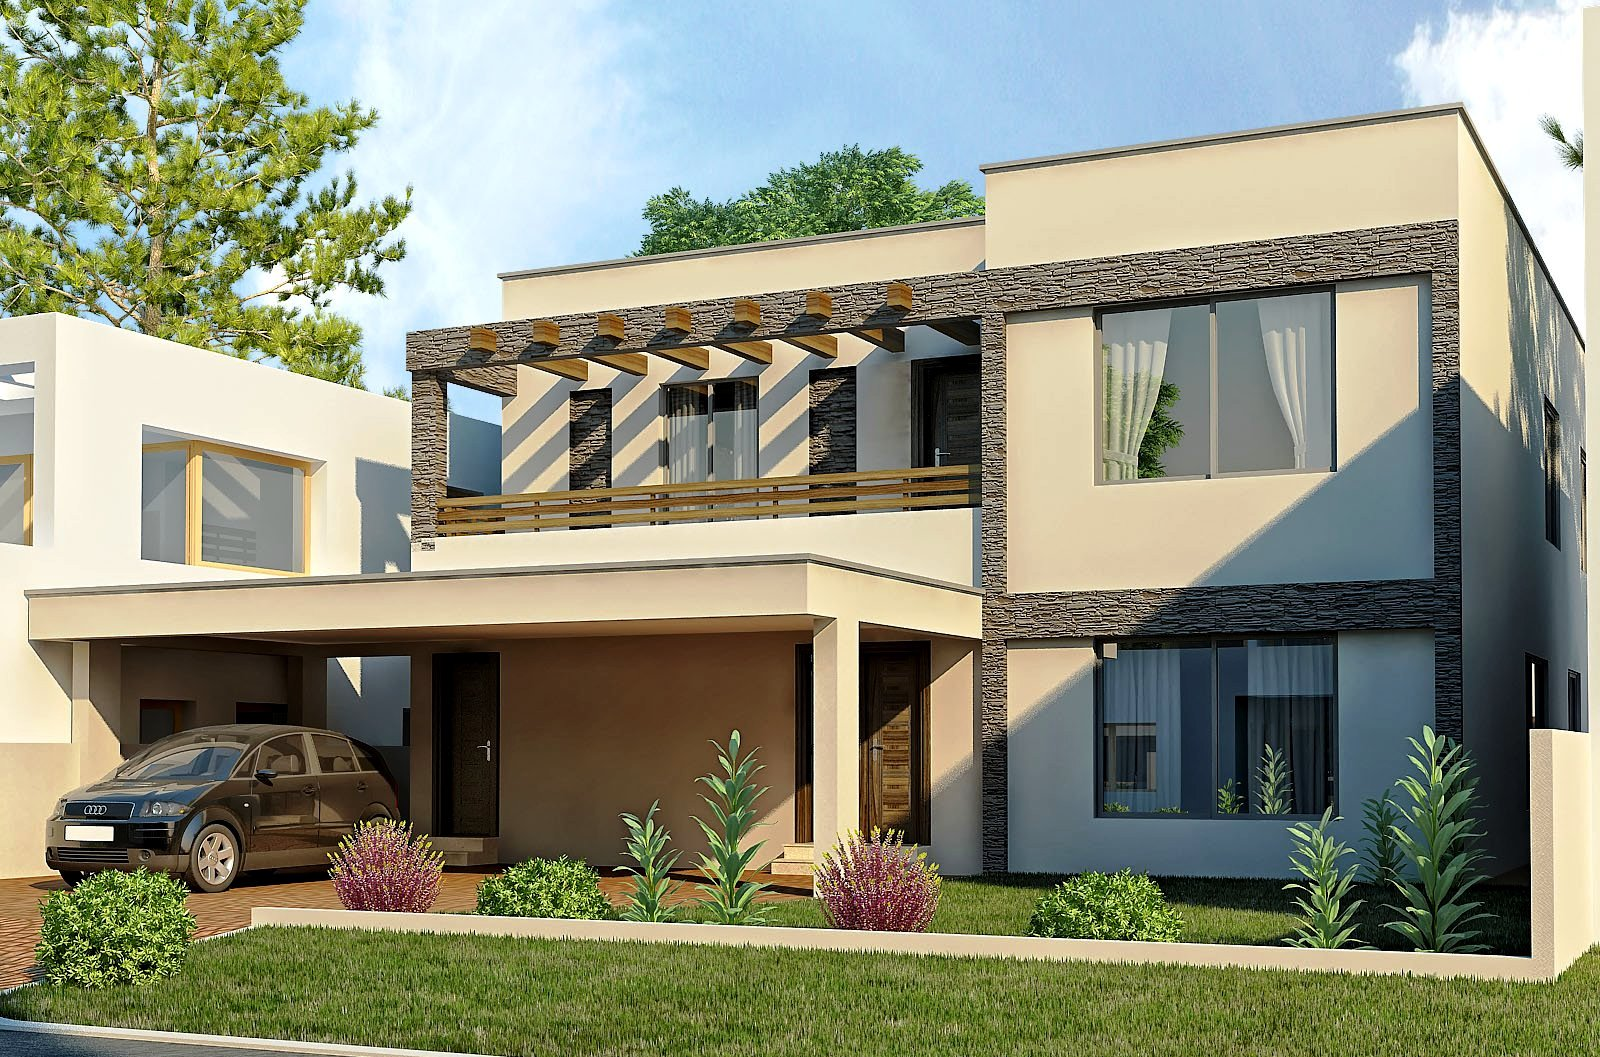 new home designs latest modern homes exterior designs views ForHome Exterior Design Images